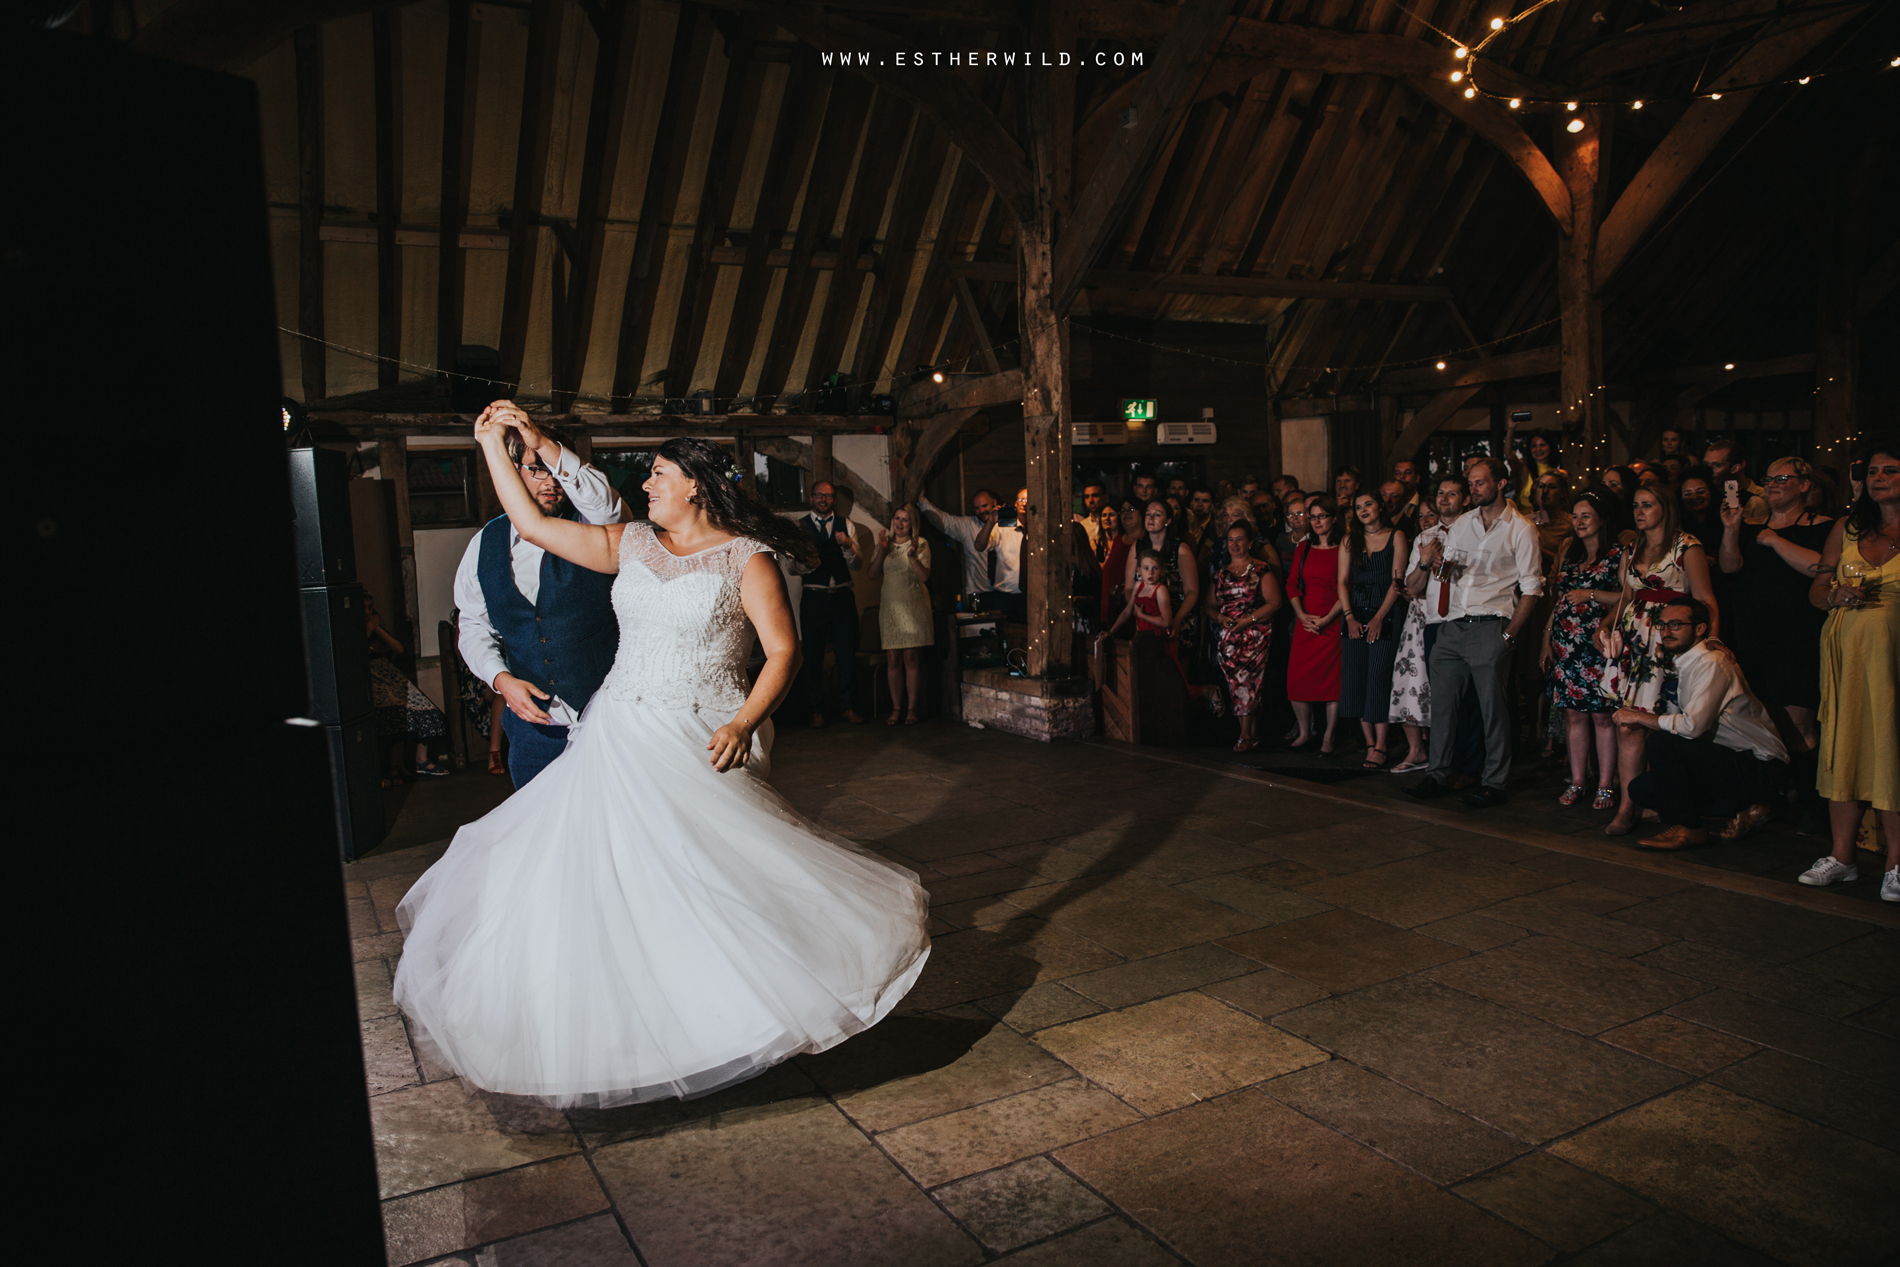 The_Red_Barn_Wedding_Kings_Lynn_Norfolk_IMG_3036.jpg